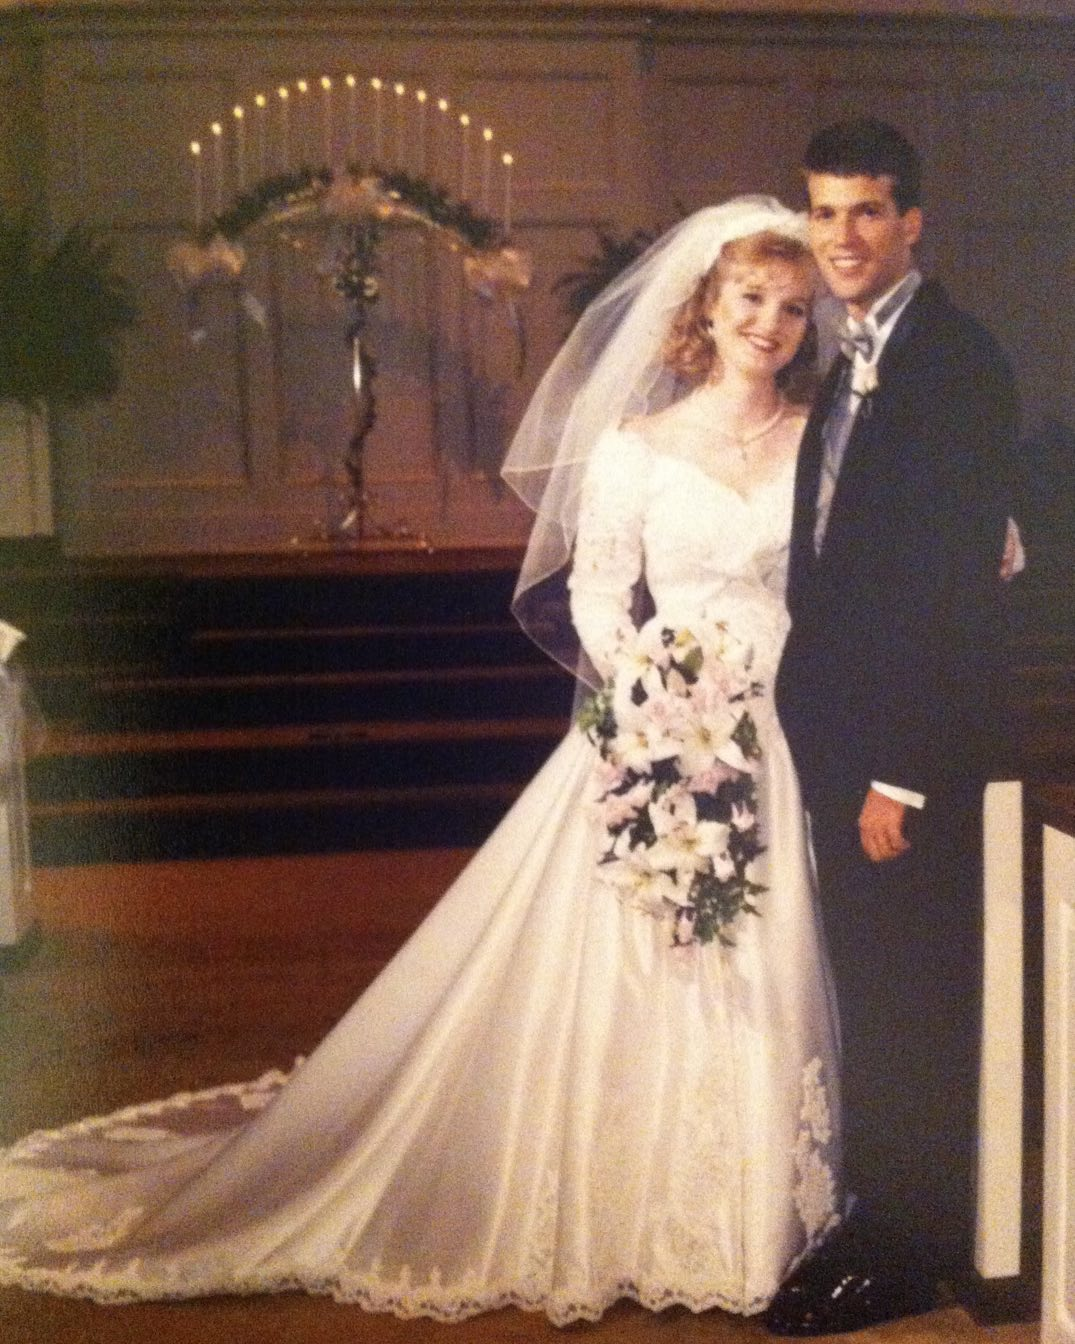 Happy 24th Anniversary to my beautiful bride, best friend, and soulmate. Amazing how we still look exactly the same. #family #anniversary